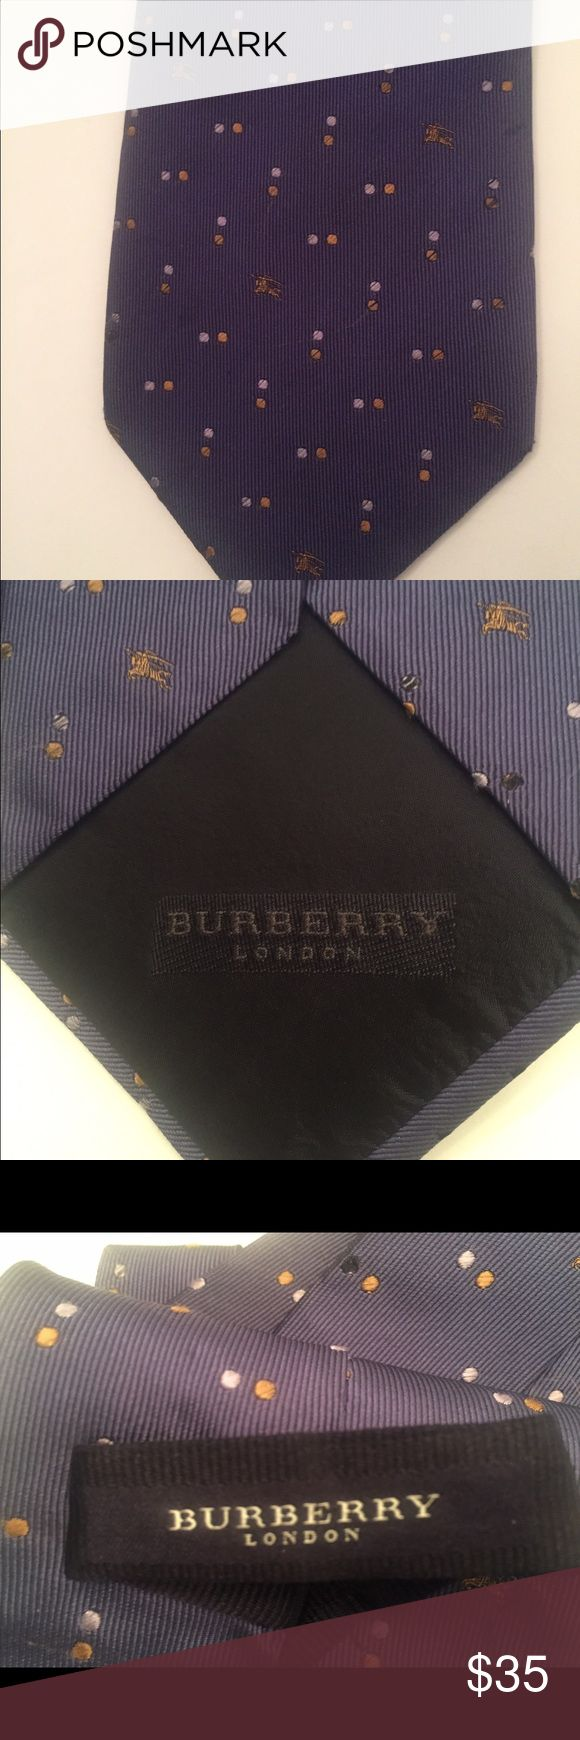 """Men's Burberry London 100% Blue Tie This is a 100% silk blue Burberry London tie with a polka dot and Burberry horse logo pattern.  The length is 57"""" and the width is 4"""".  The color is not a true blue but can best be described as a bluish- purple (trust me -  no one would call this tie purple but doing my best to describe the color!!). :-) Burberry Accessories Ties"""